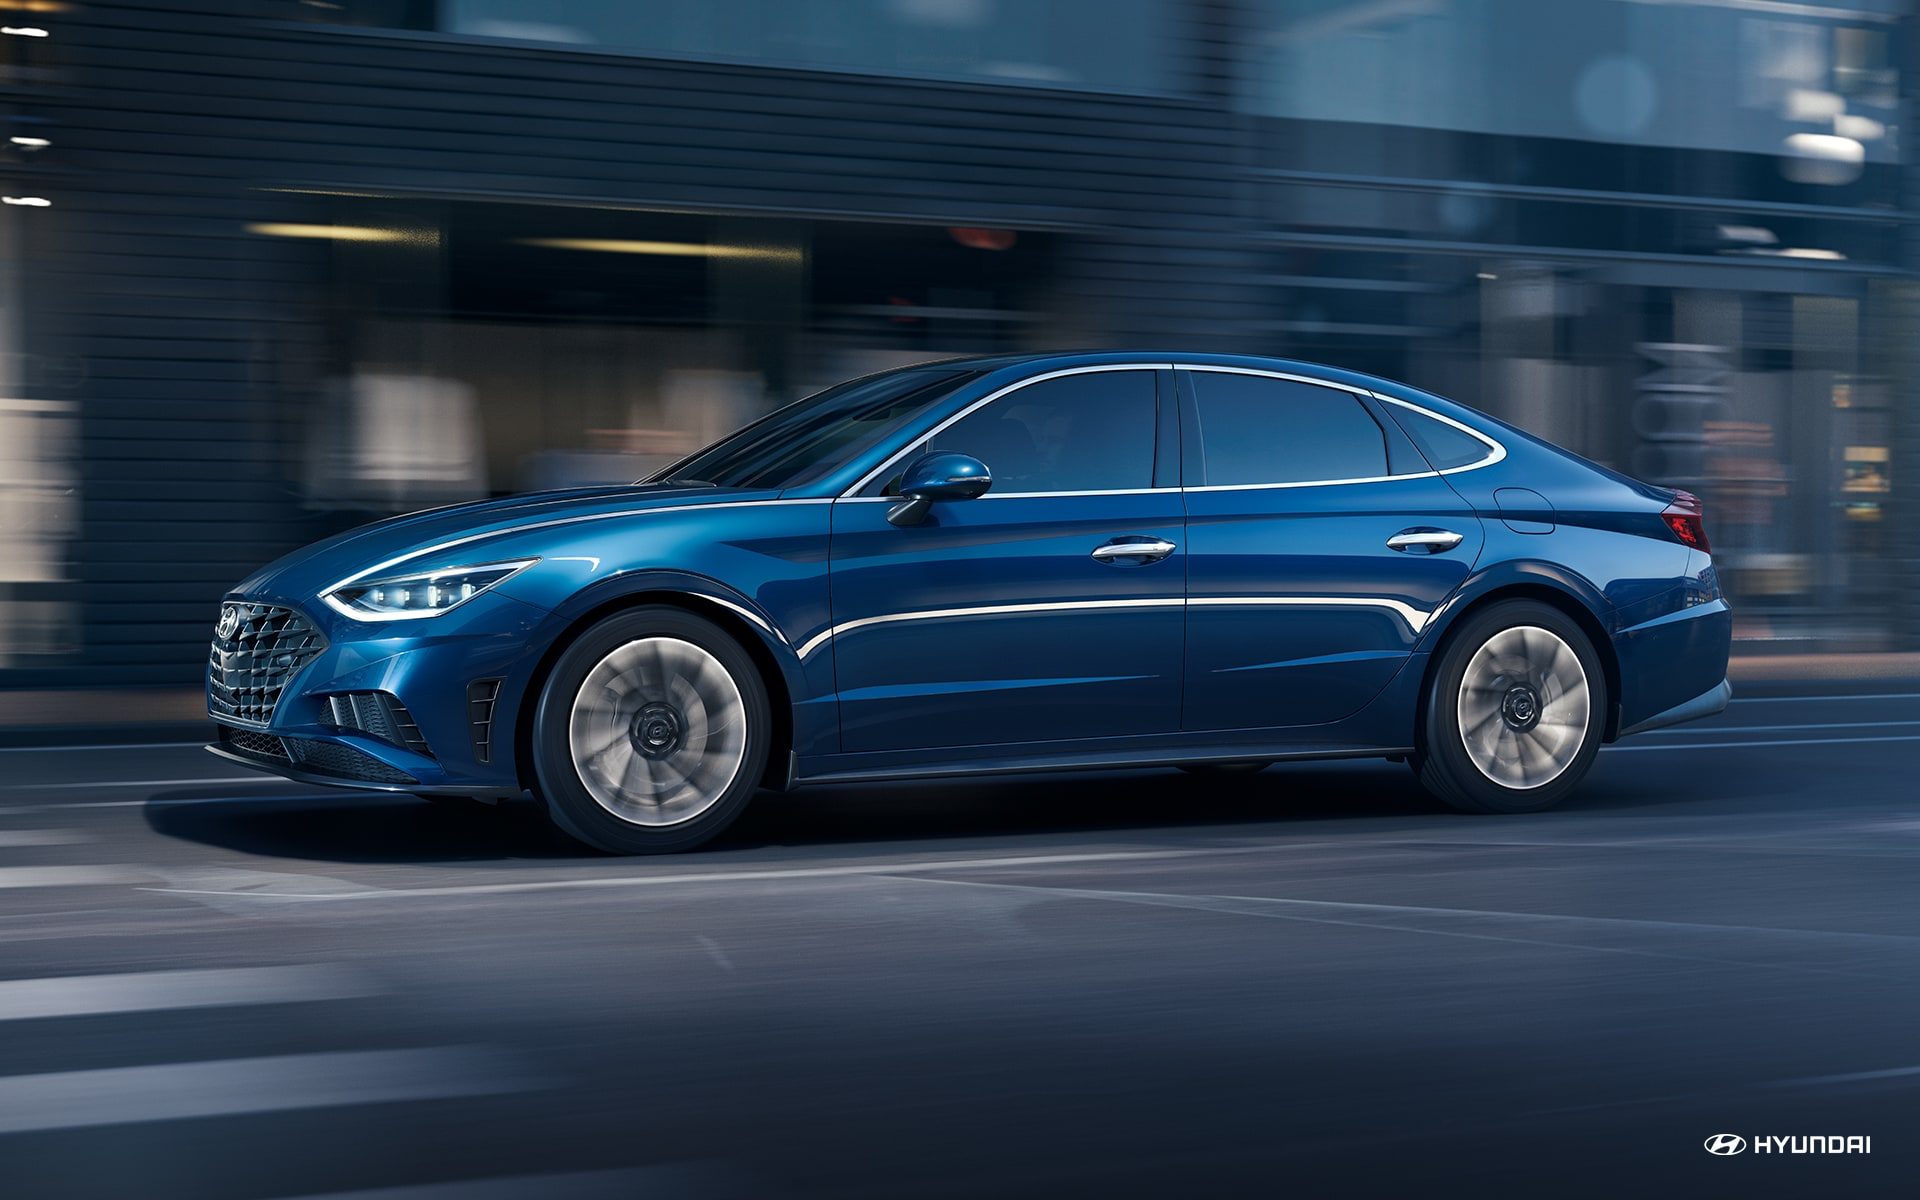 2020 Hyundai Sonata for sale in Orlando, FL